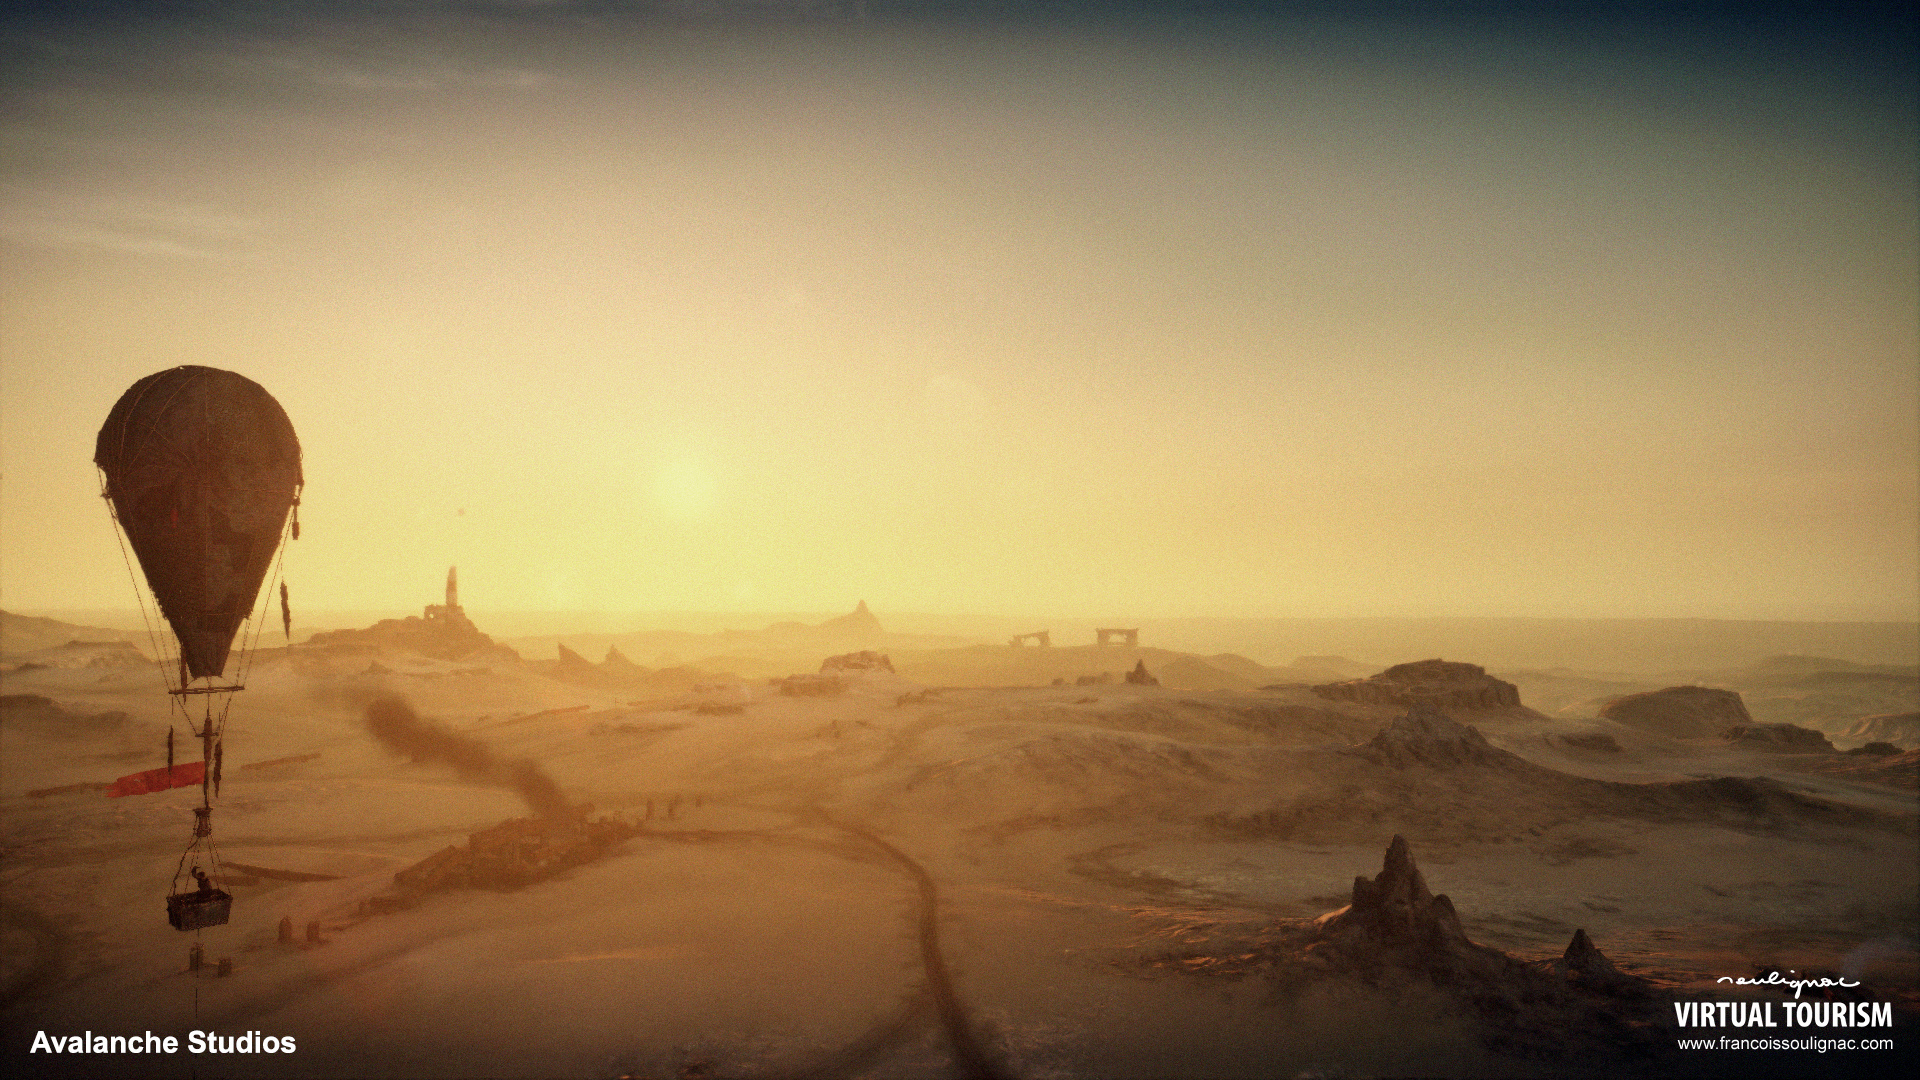 Virtual Tourism in desert of Wasteland (Australia, Namibia) - Aerial photography in Mad Max. © Avalanche Studios - François Soulignac